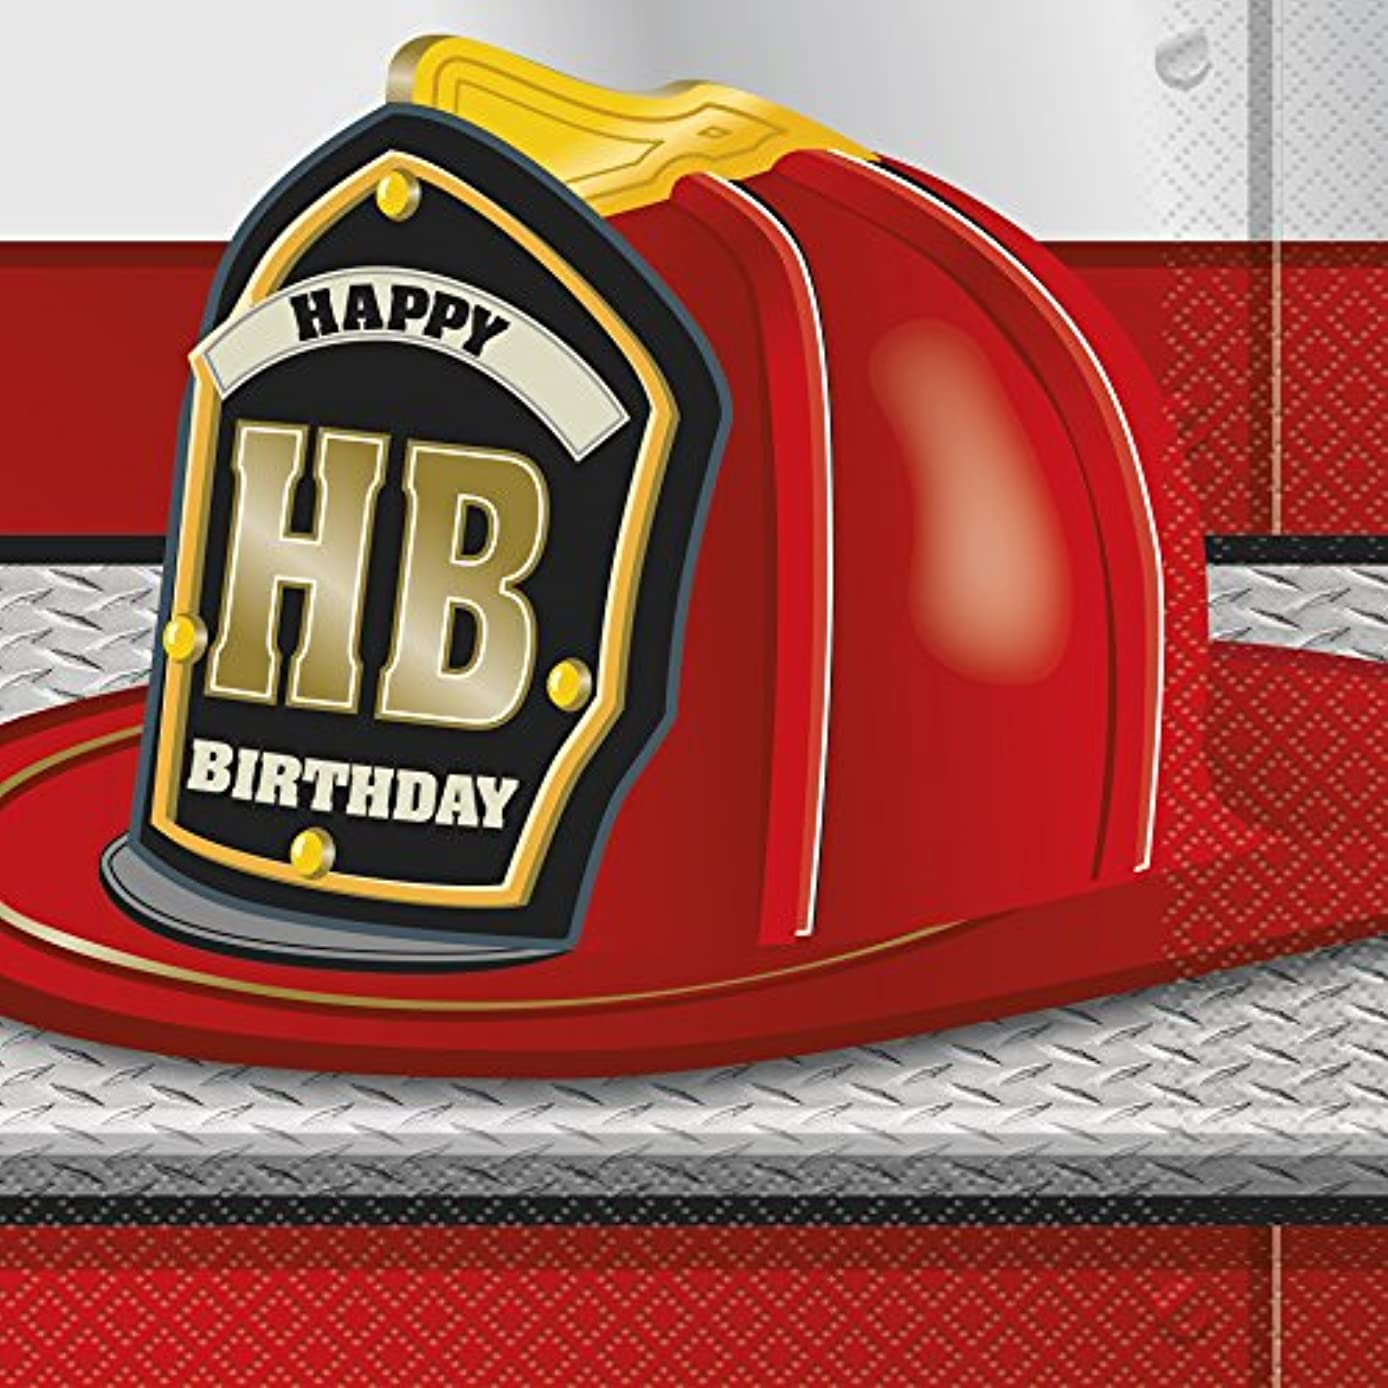 Fire Truck Birthday Party Napkins, 16ct